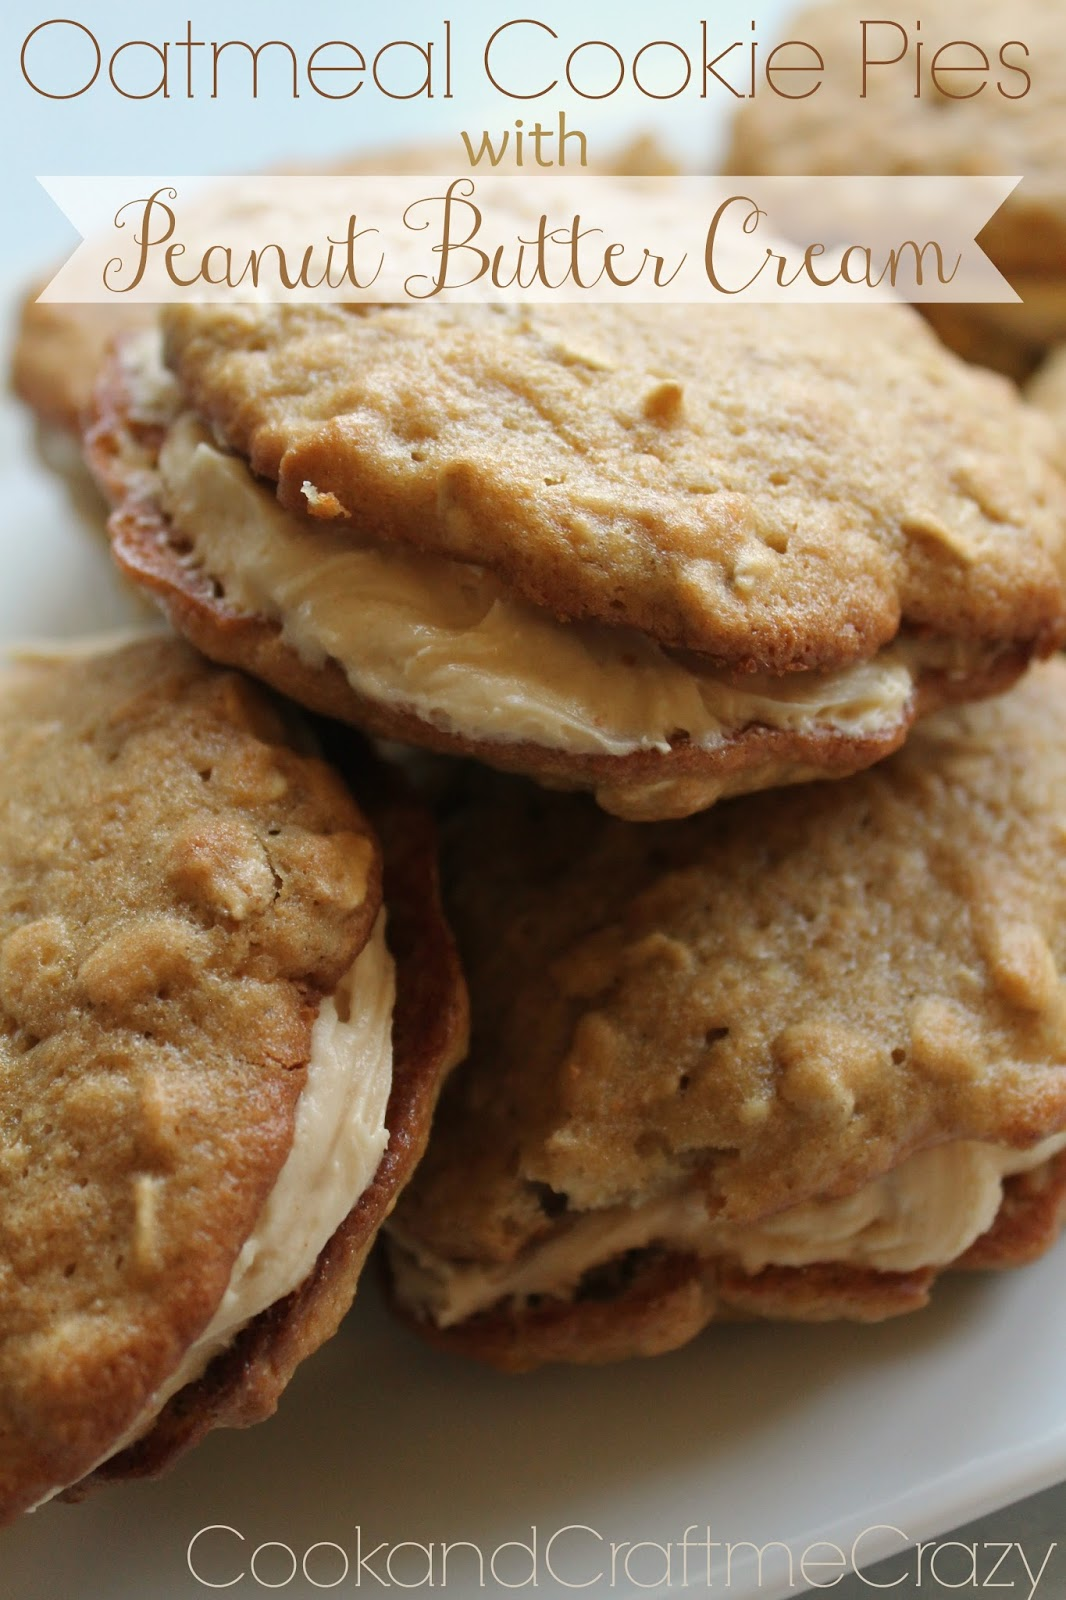 Oatmeal Cookie Pies with Peanut Butter Cream